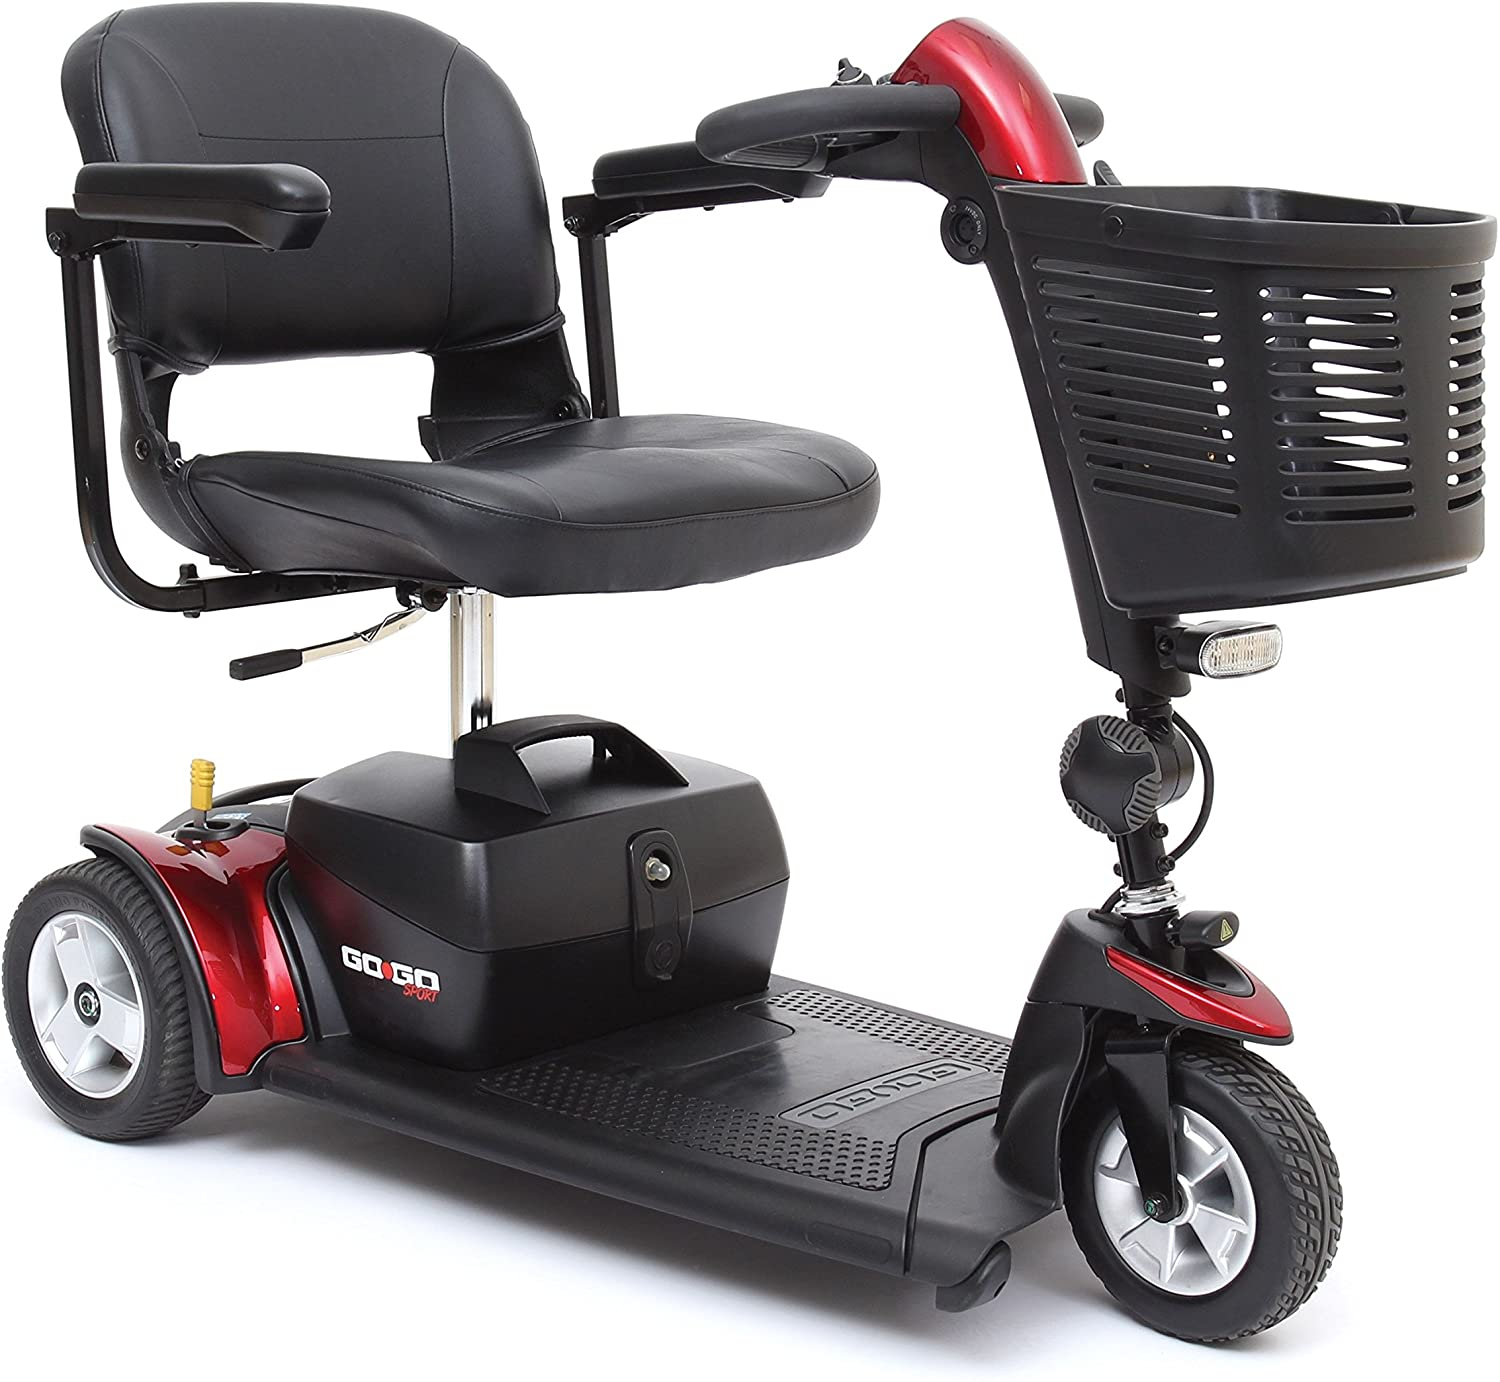 Pride Go-Go Sport 3 Wheel Mobility Scooter - Motorized Electric Medical Carts for Seniors, Handicapped, or Disabled Adults: Health & Personal Care